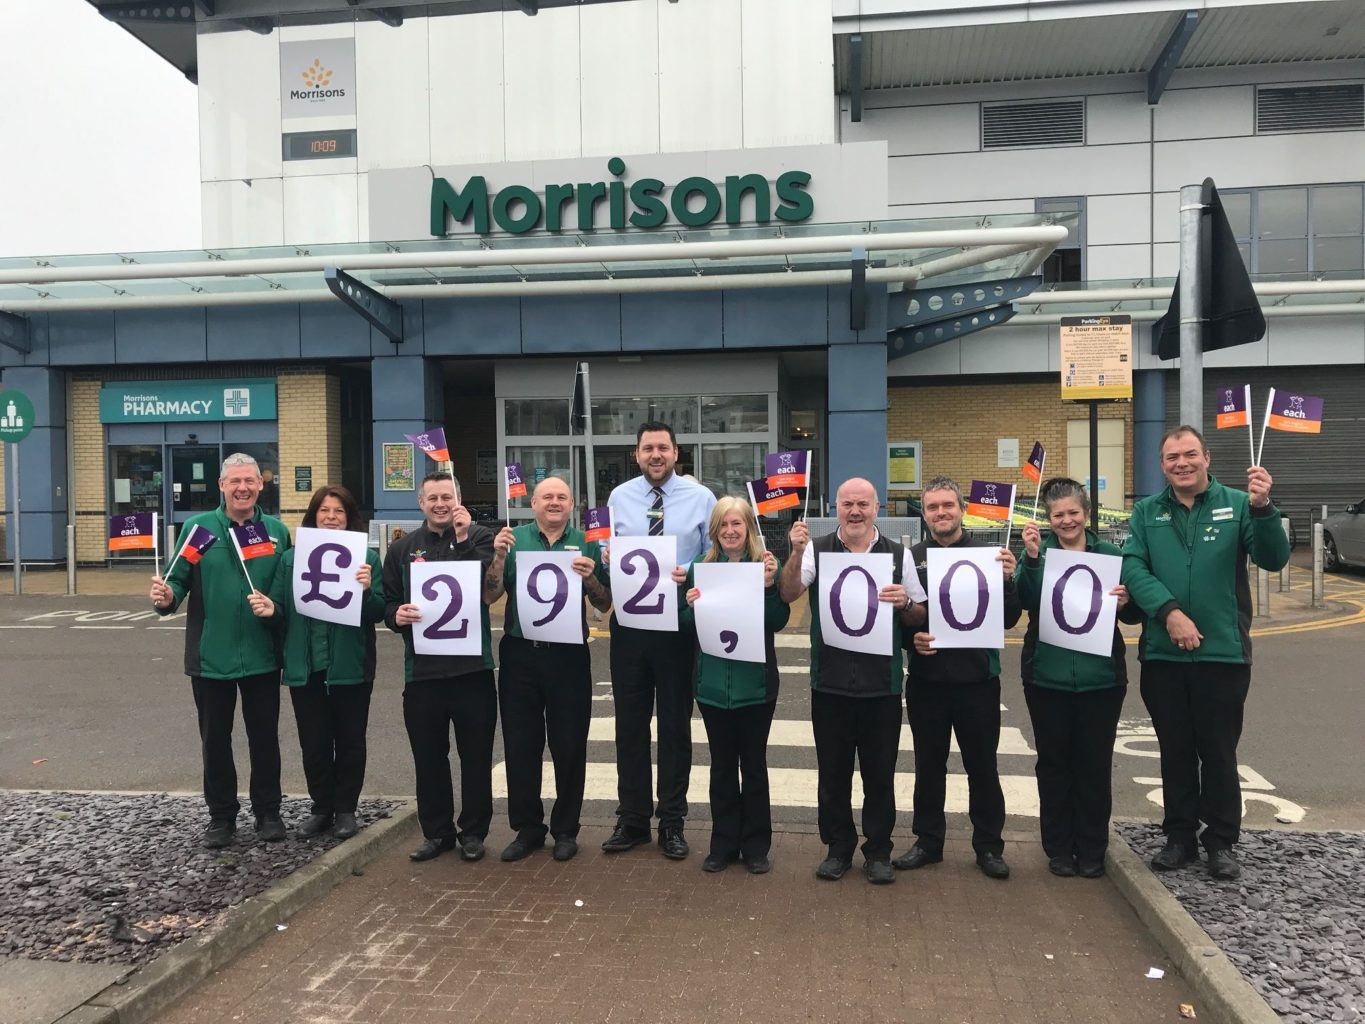 Morrisons staff fundraising for EACH